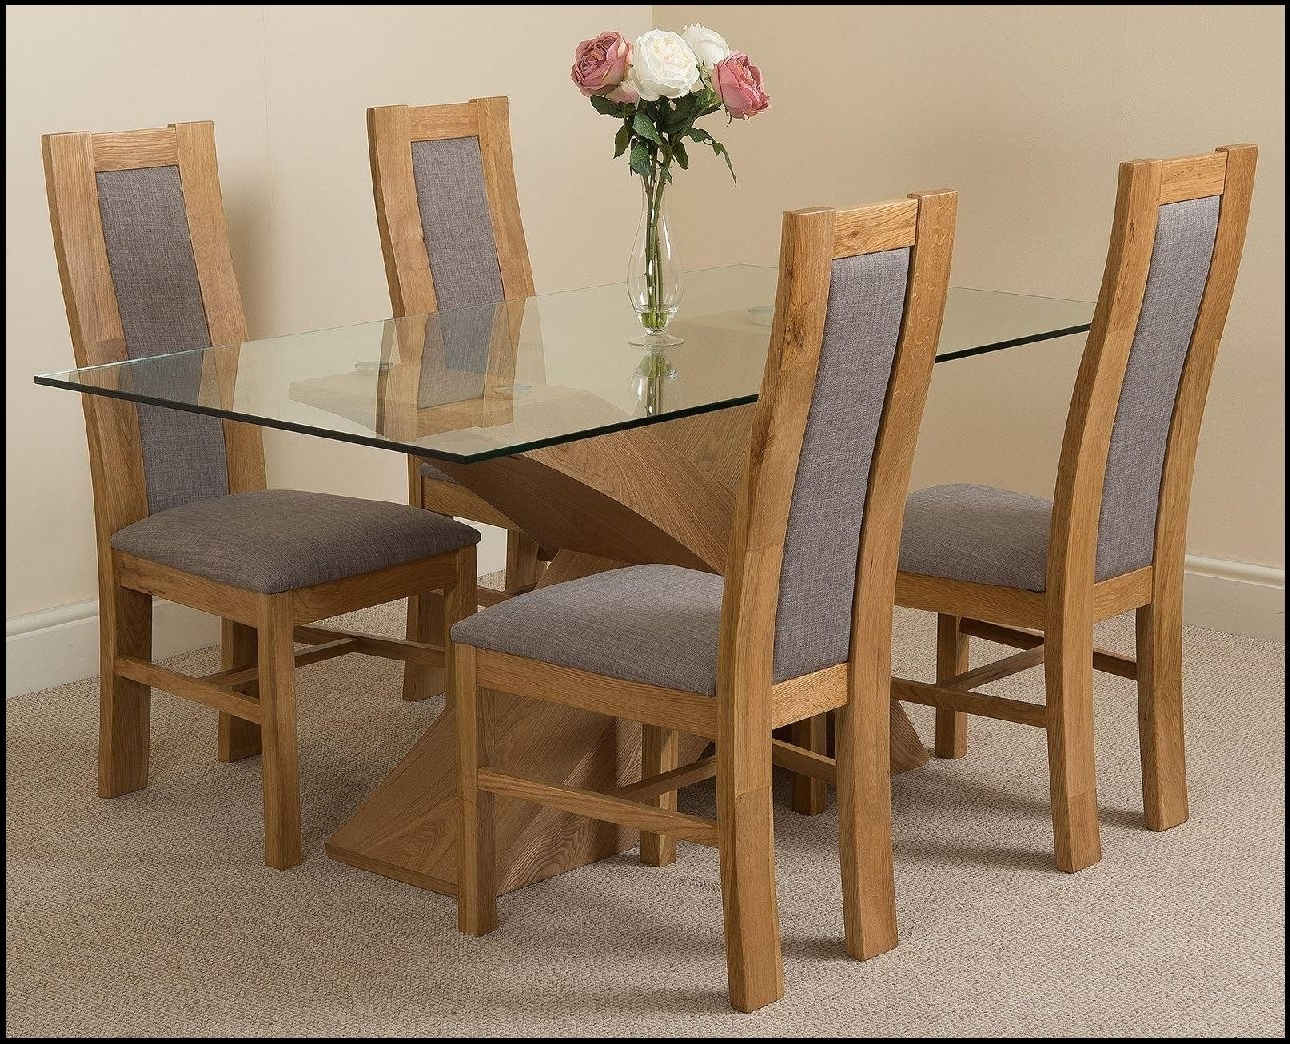 Most Popular Wonderfull Cube Oak 160 Cm Dining Table And 6 Chairs Quercus Living Pertaining To Glass And Oak Dining Tables And Chairs (View 8 of 25)